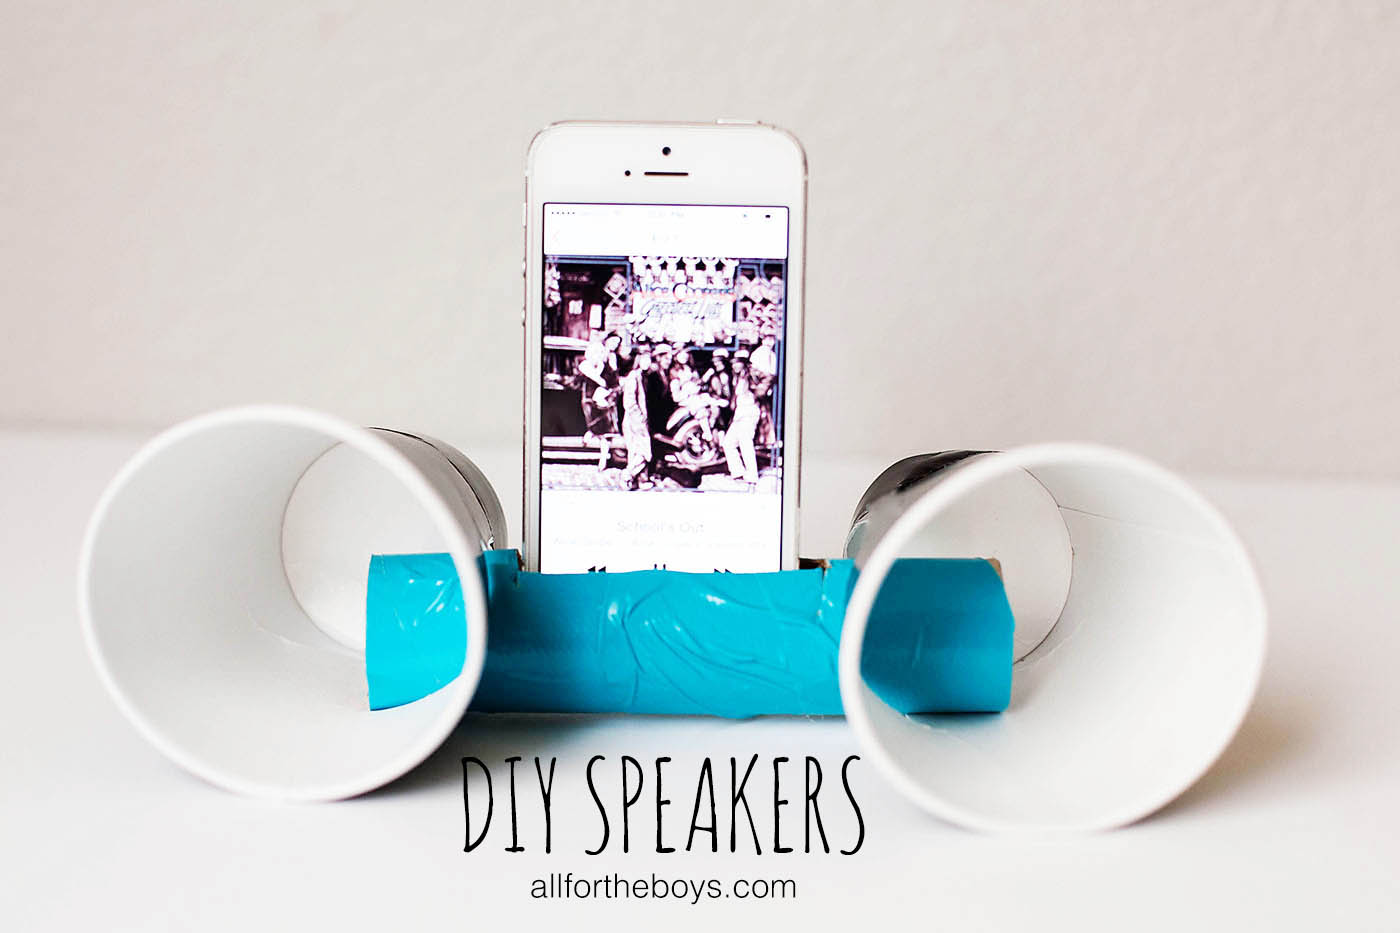 DIY speakers from All for the Boys blog